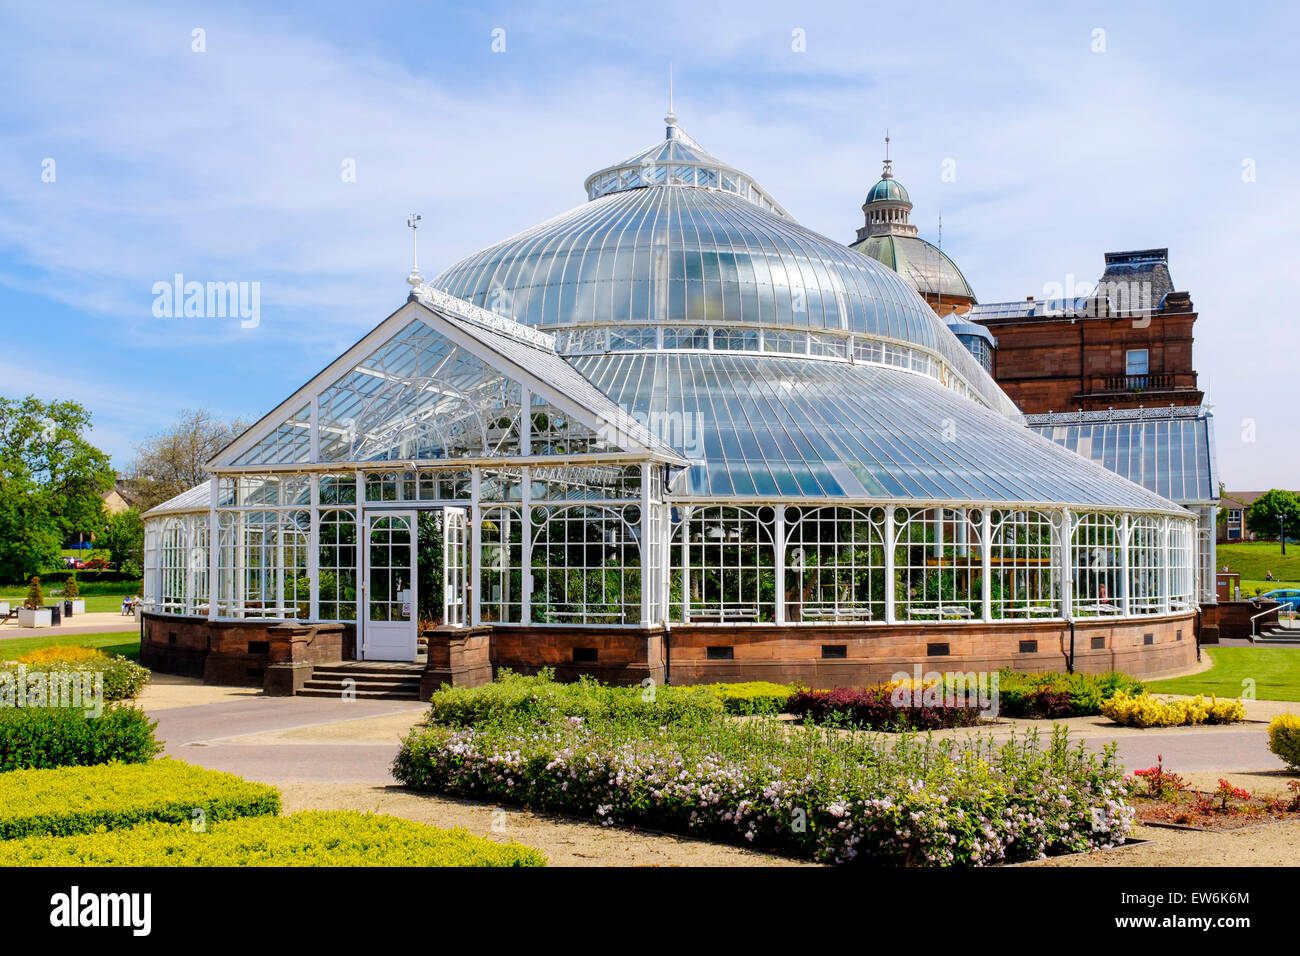 Conservatory at the botanical garden section of the Peoples Palace housing exotic plants, Glasgow Green, Glasgow, - Stock Image